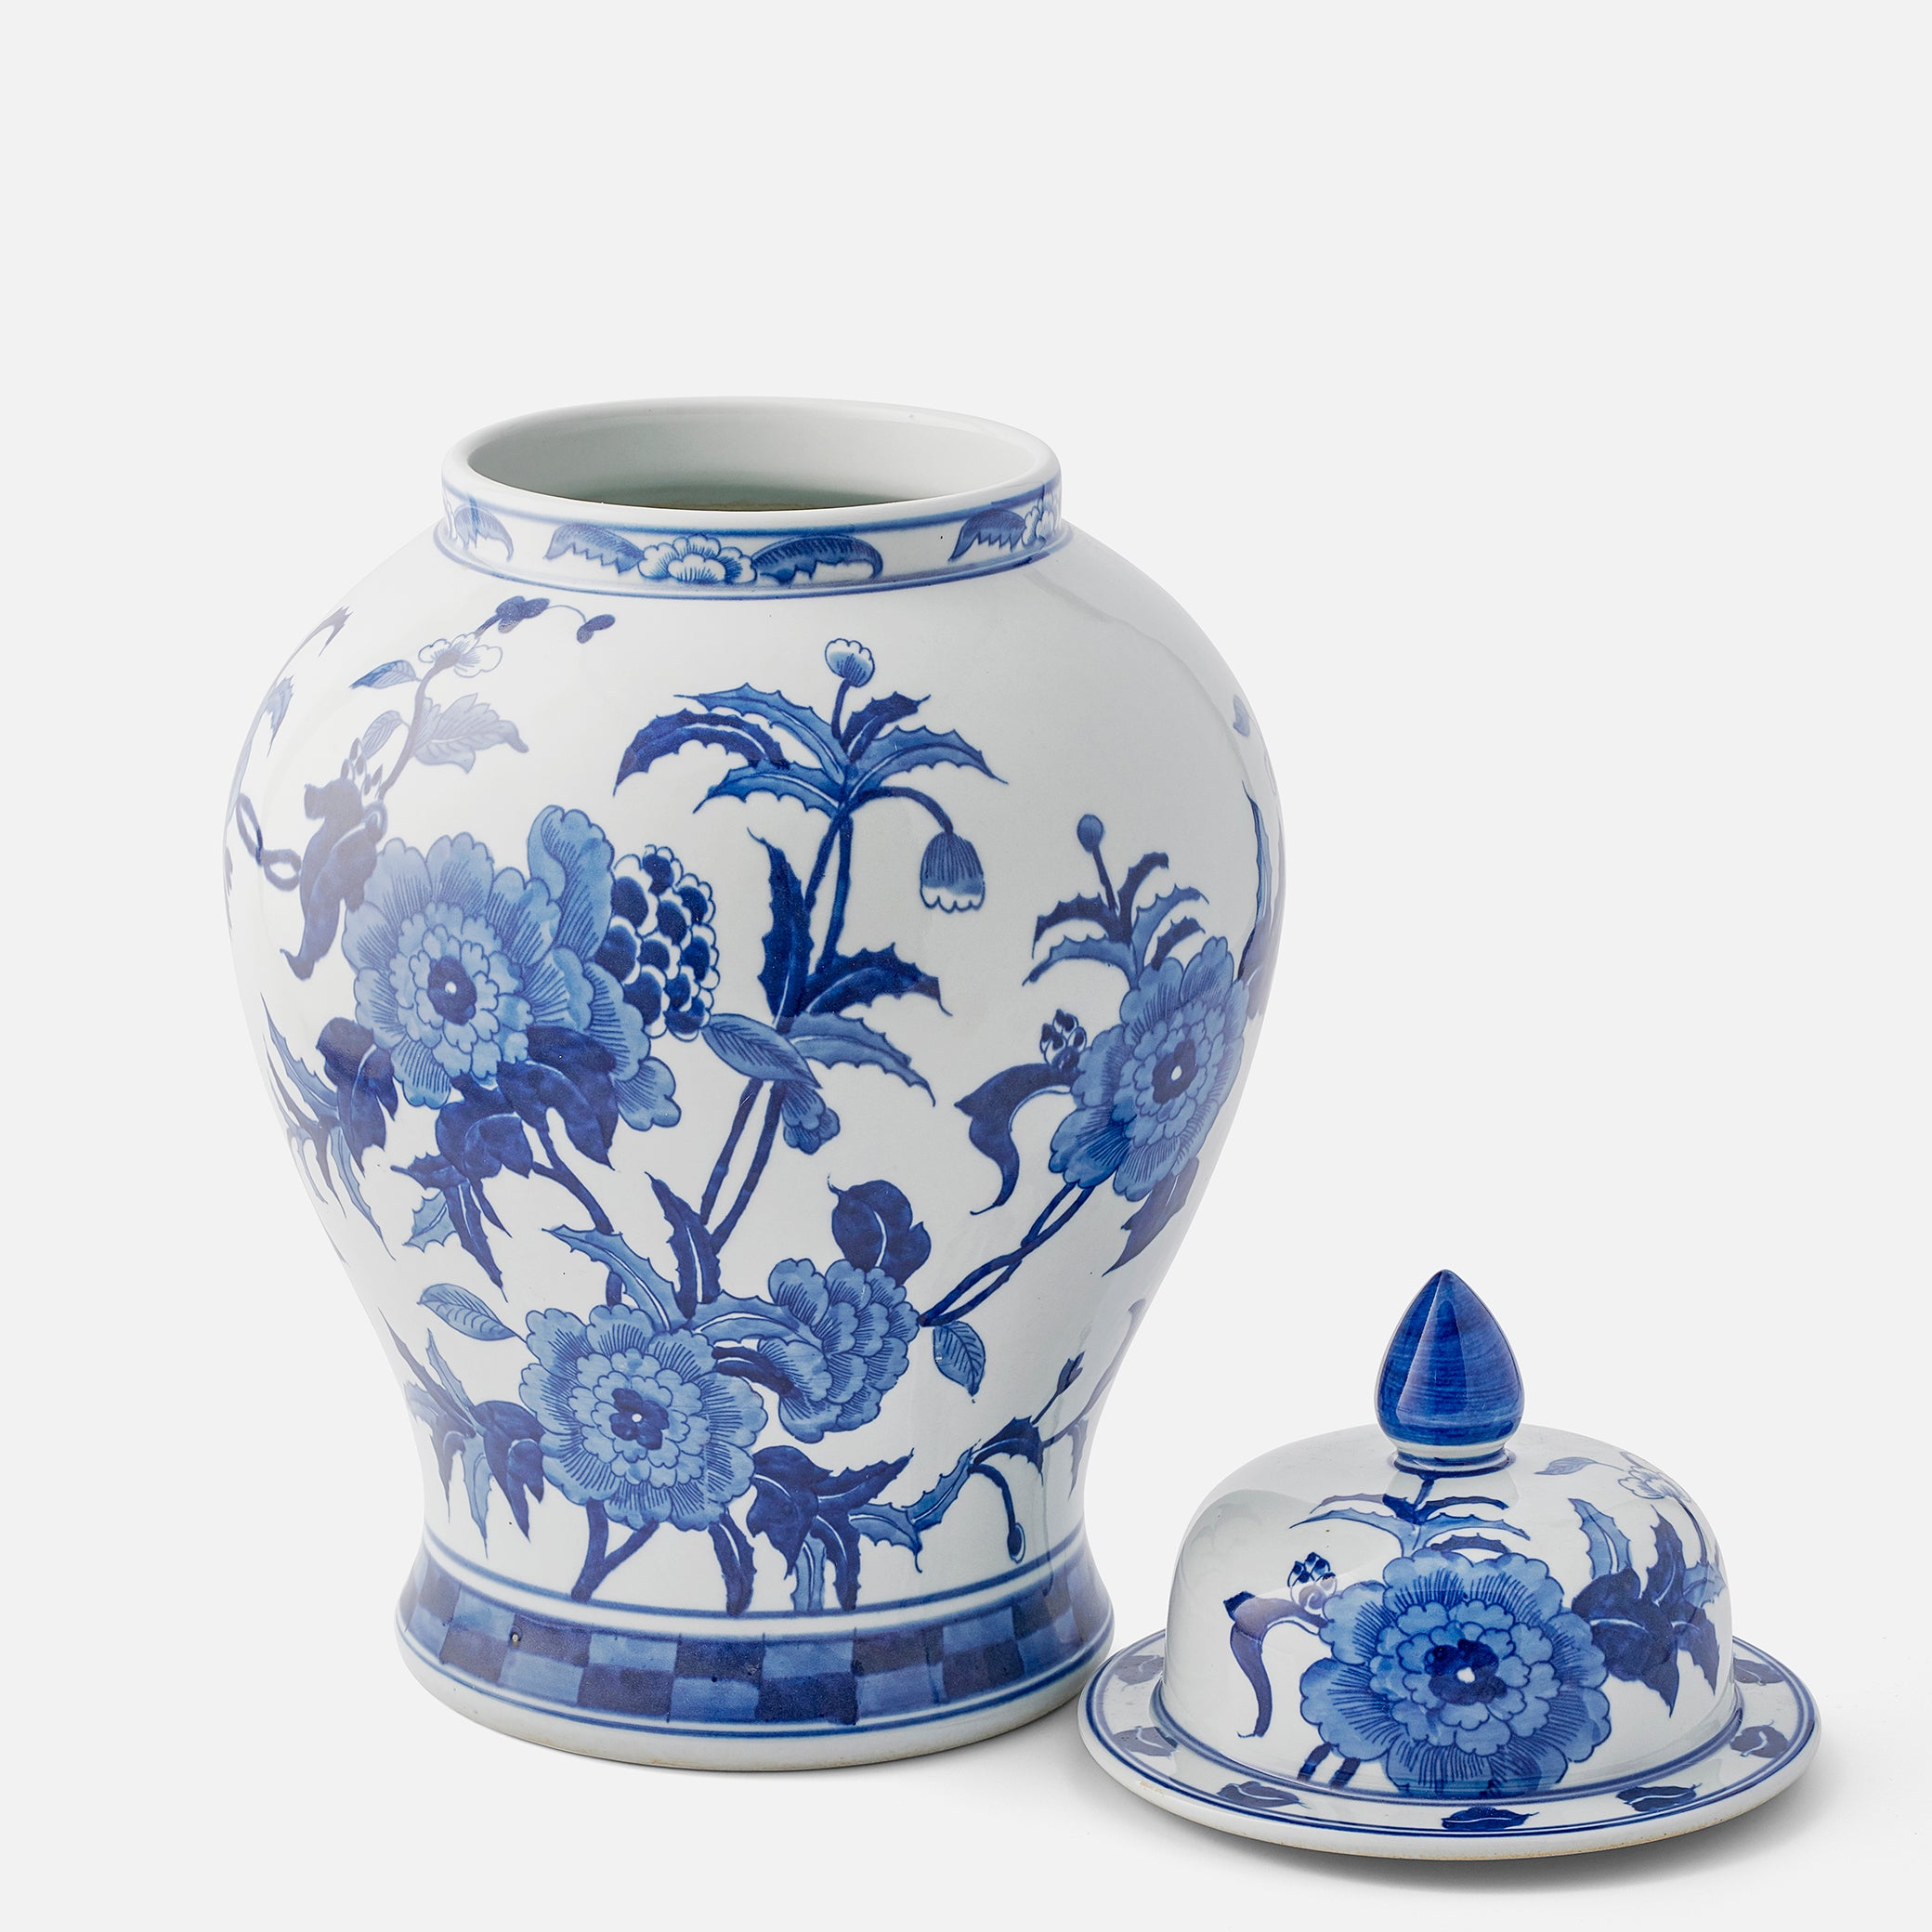 Large Blue and White Decorated Ginger Jar